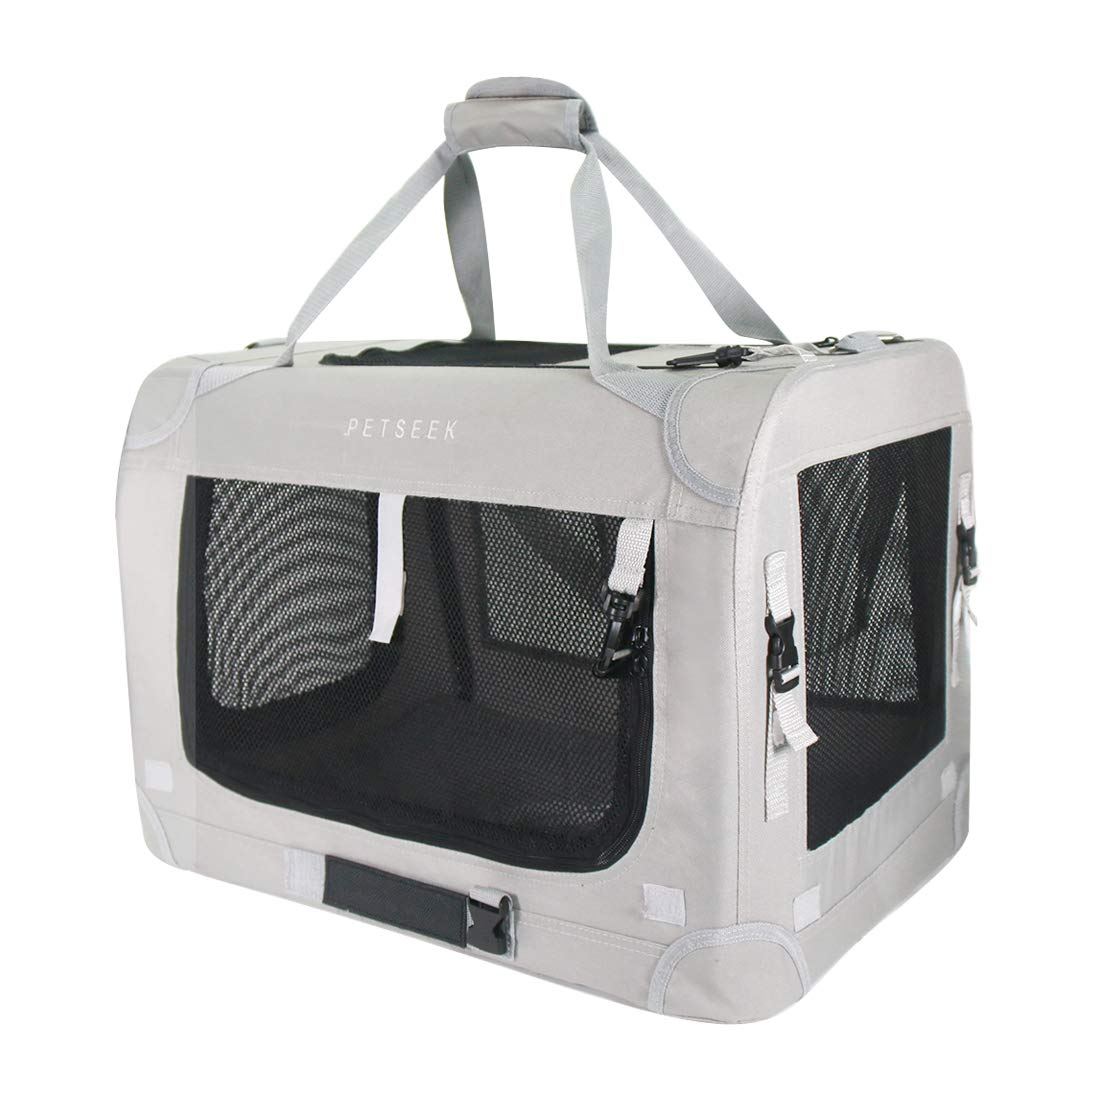 Petseek Extra Large Cat Carrier Soft Sided Small Medium Dog Pet Carrier 24''x16.5''x16'' Travel Collapsible Ventilated Comfortable Design Portable Vehicle